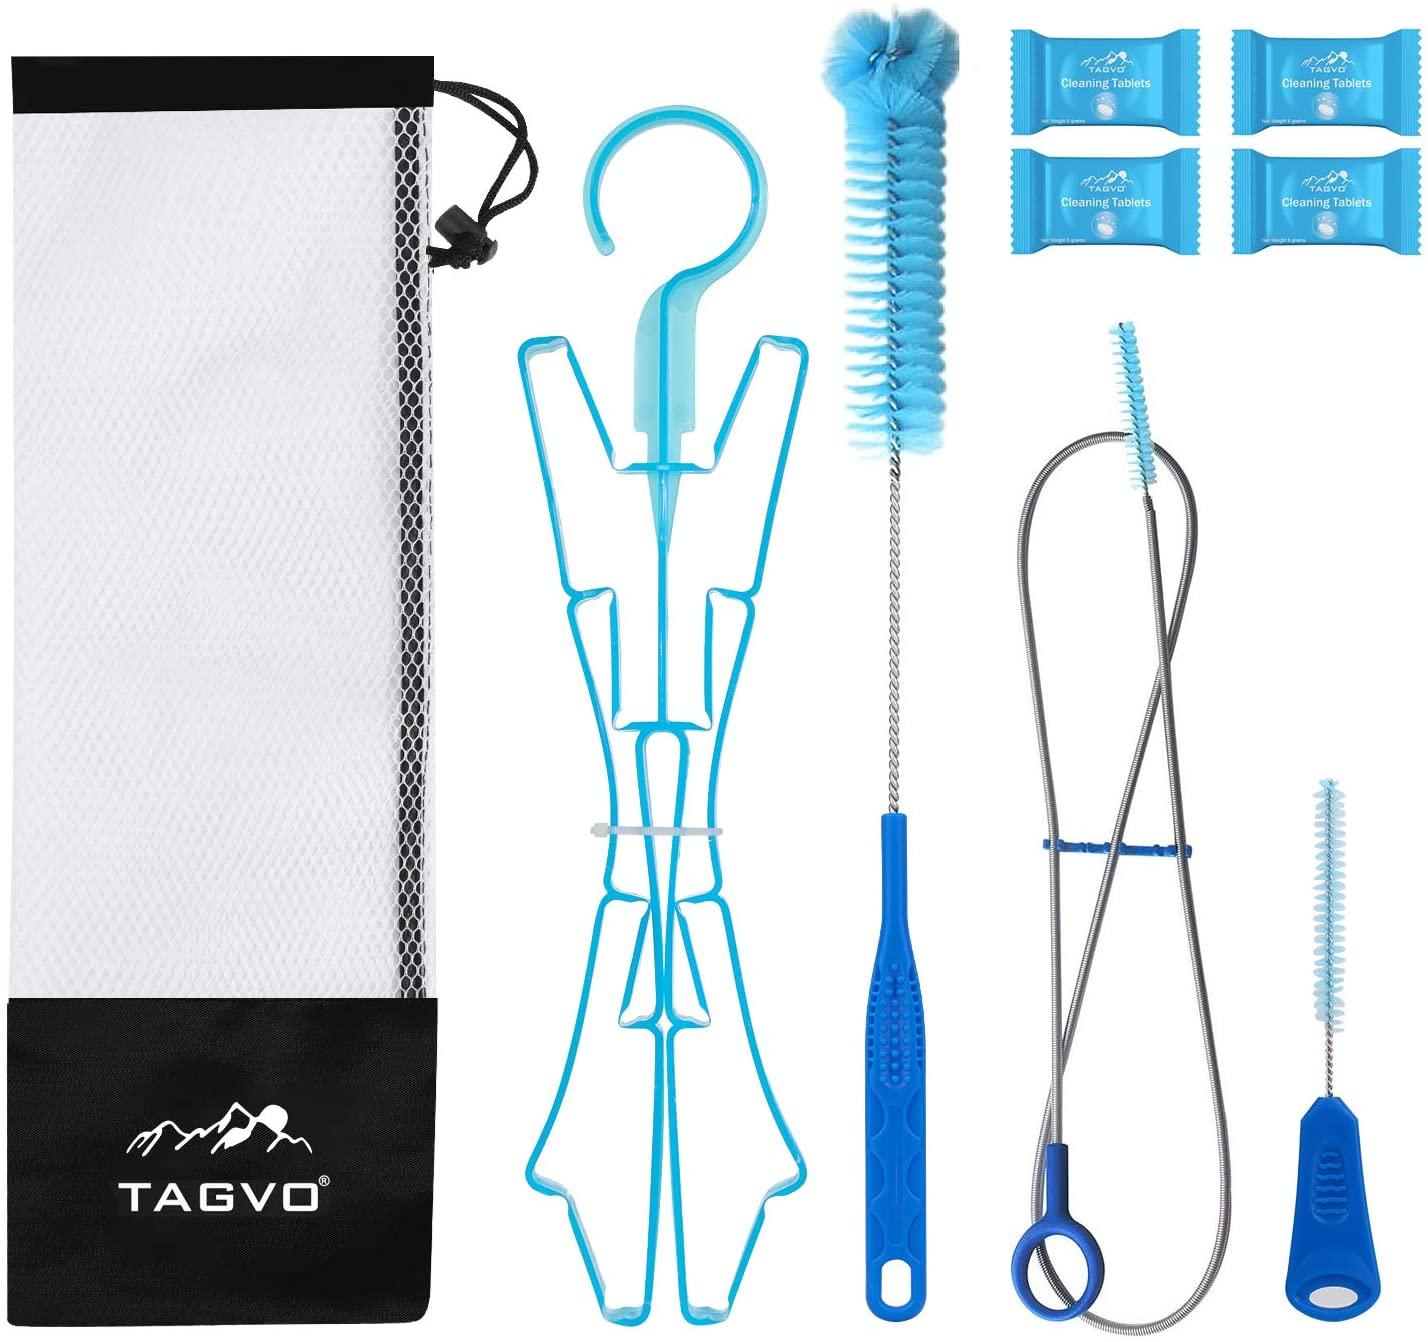 TAGVO Hydration Bladder Tube Brush Cleaning Kit Water 6 1 in shop Bl New York Mall